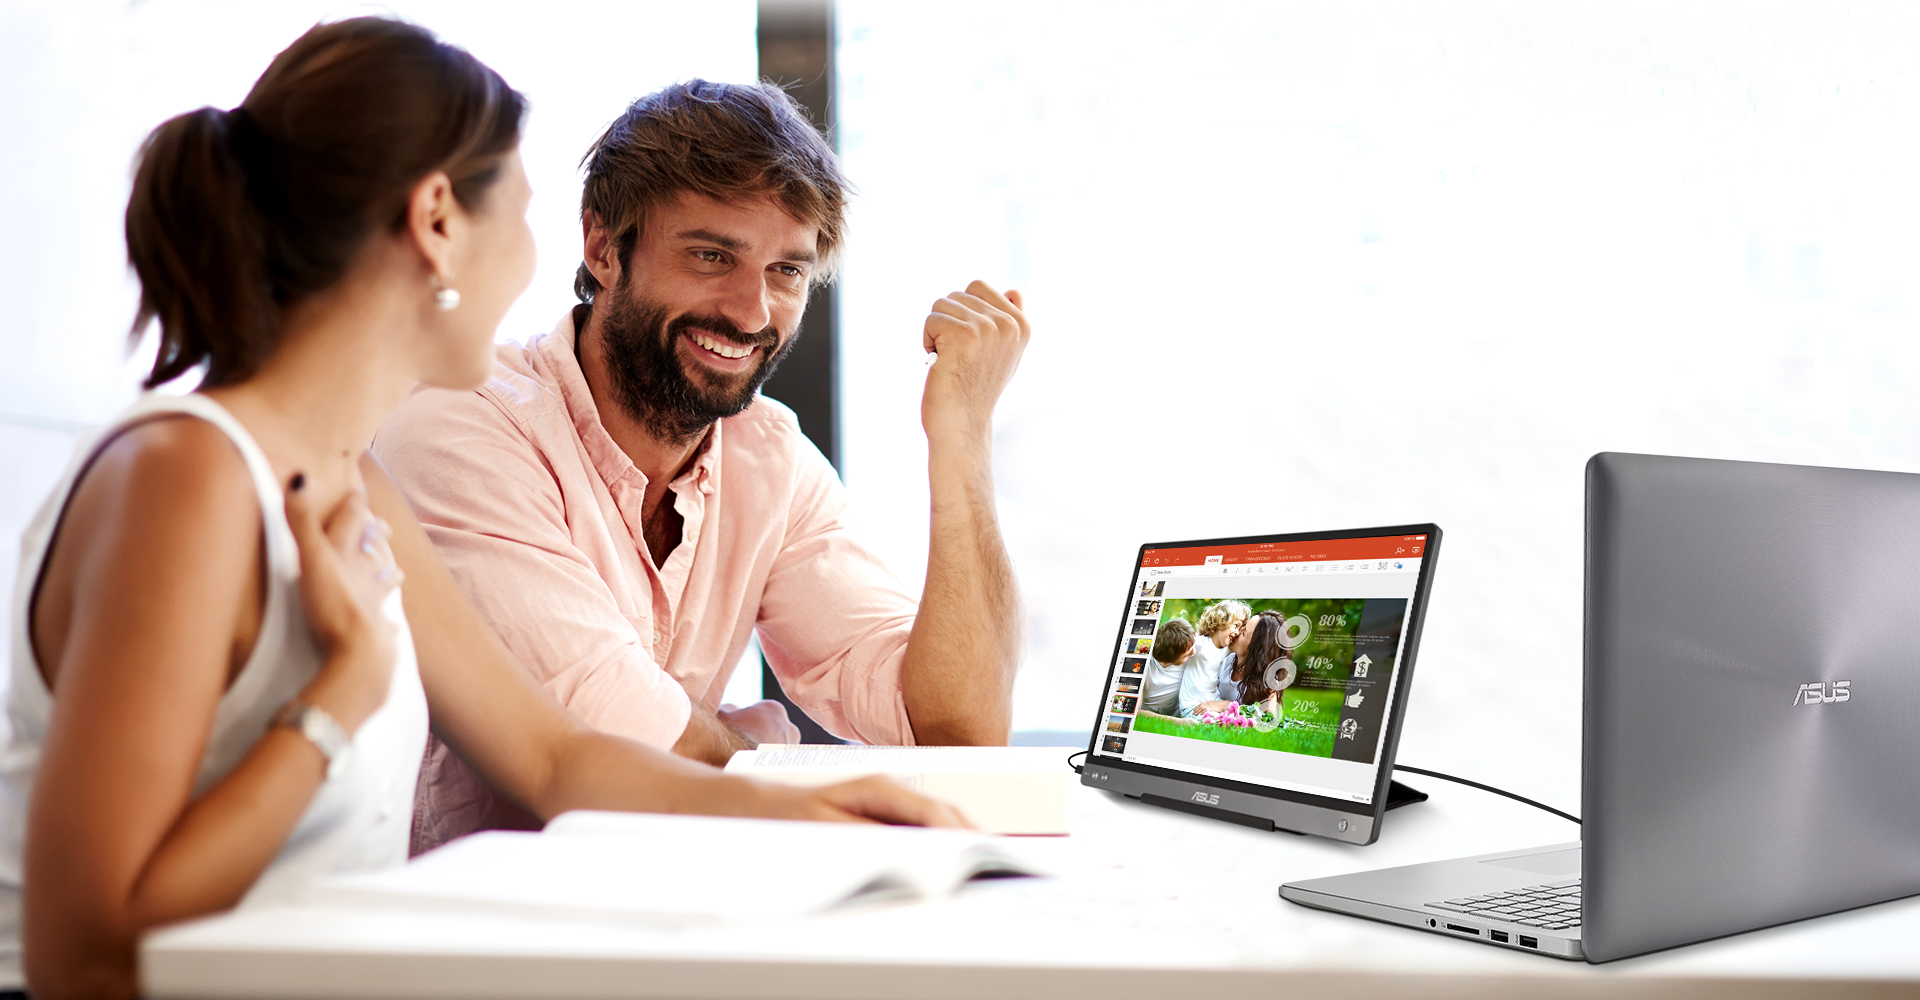 ZenScreen MB16AC uses IPS technology to give you more flexibility when extending your screen